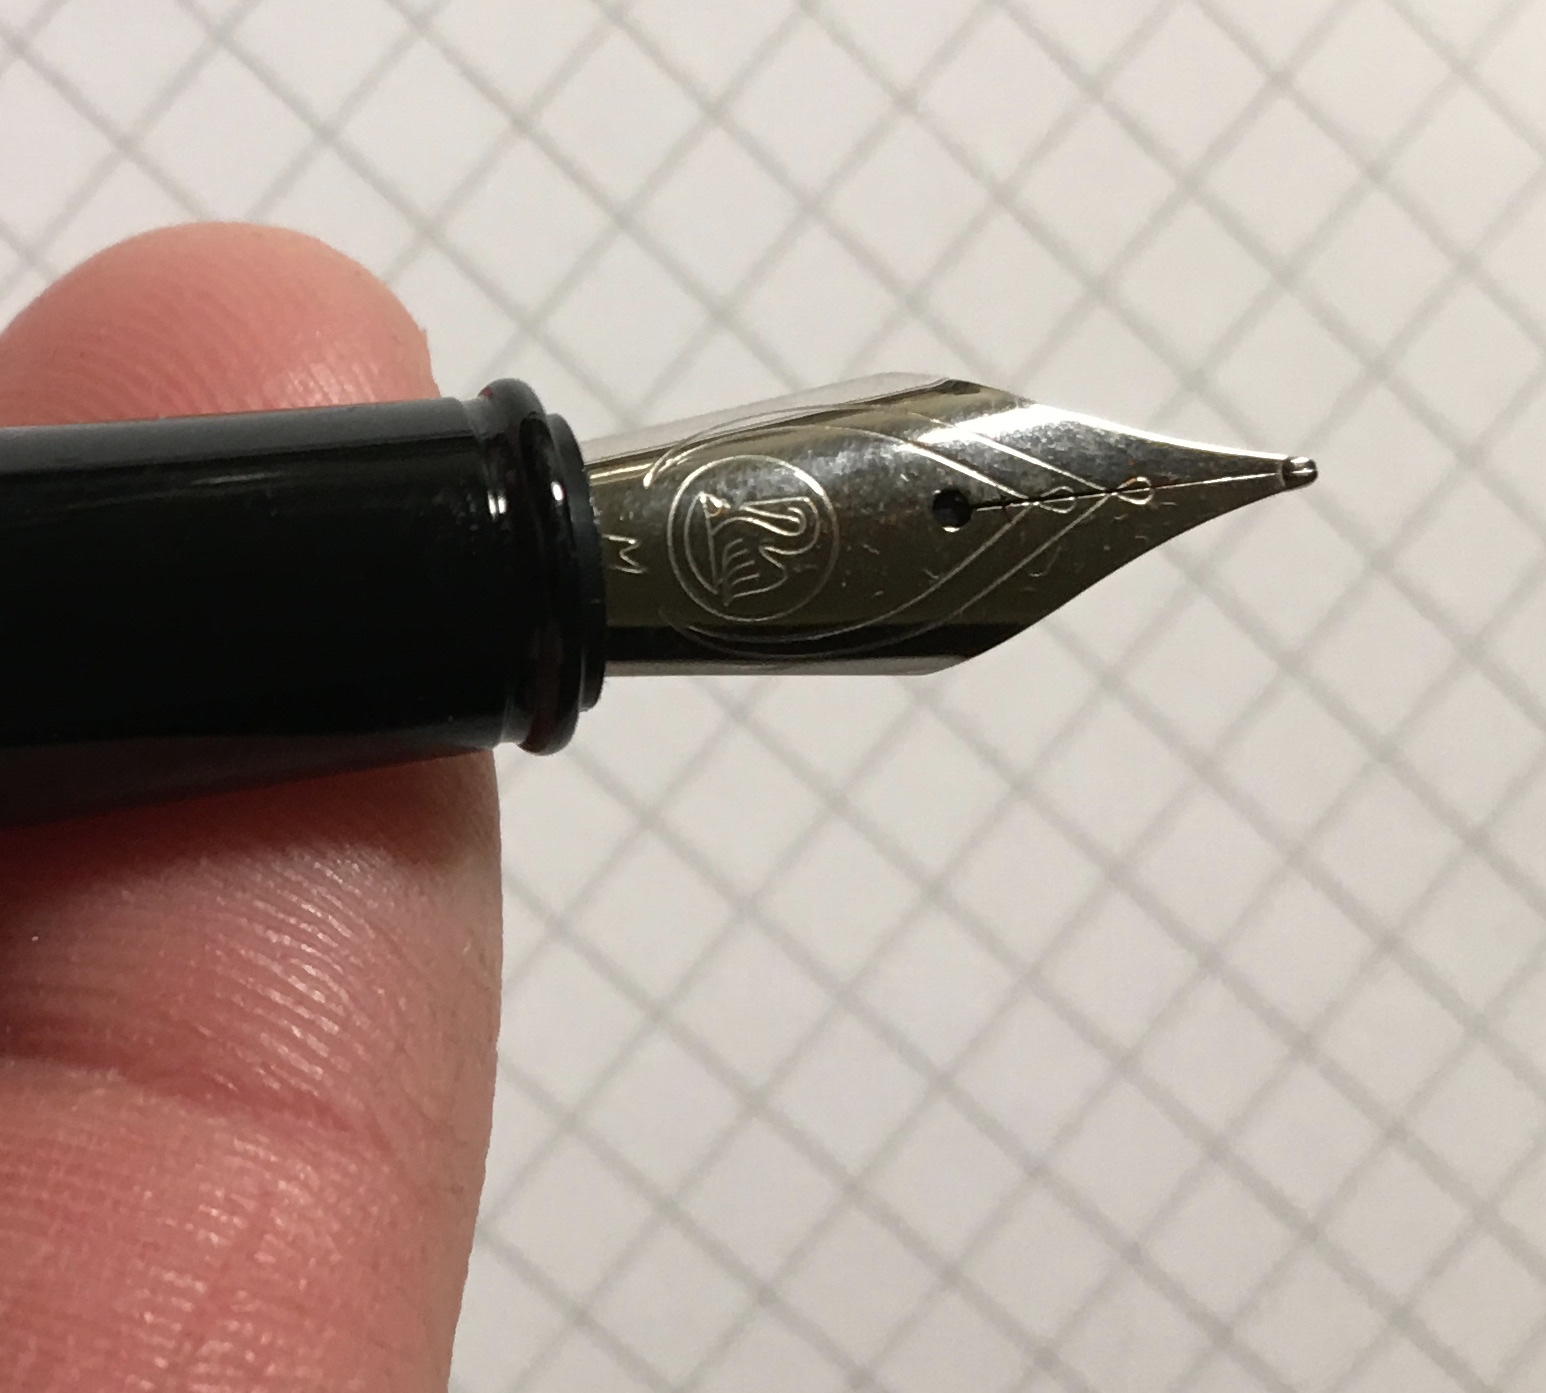 The Pelikan Stola only comes in a medium stainless steel nib.